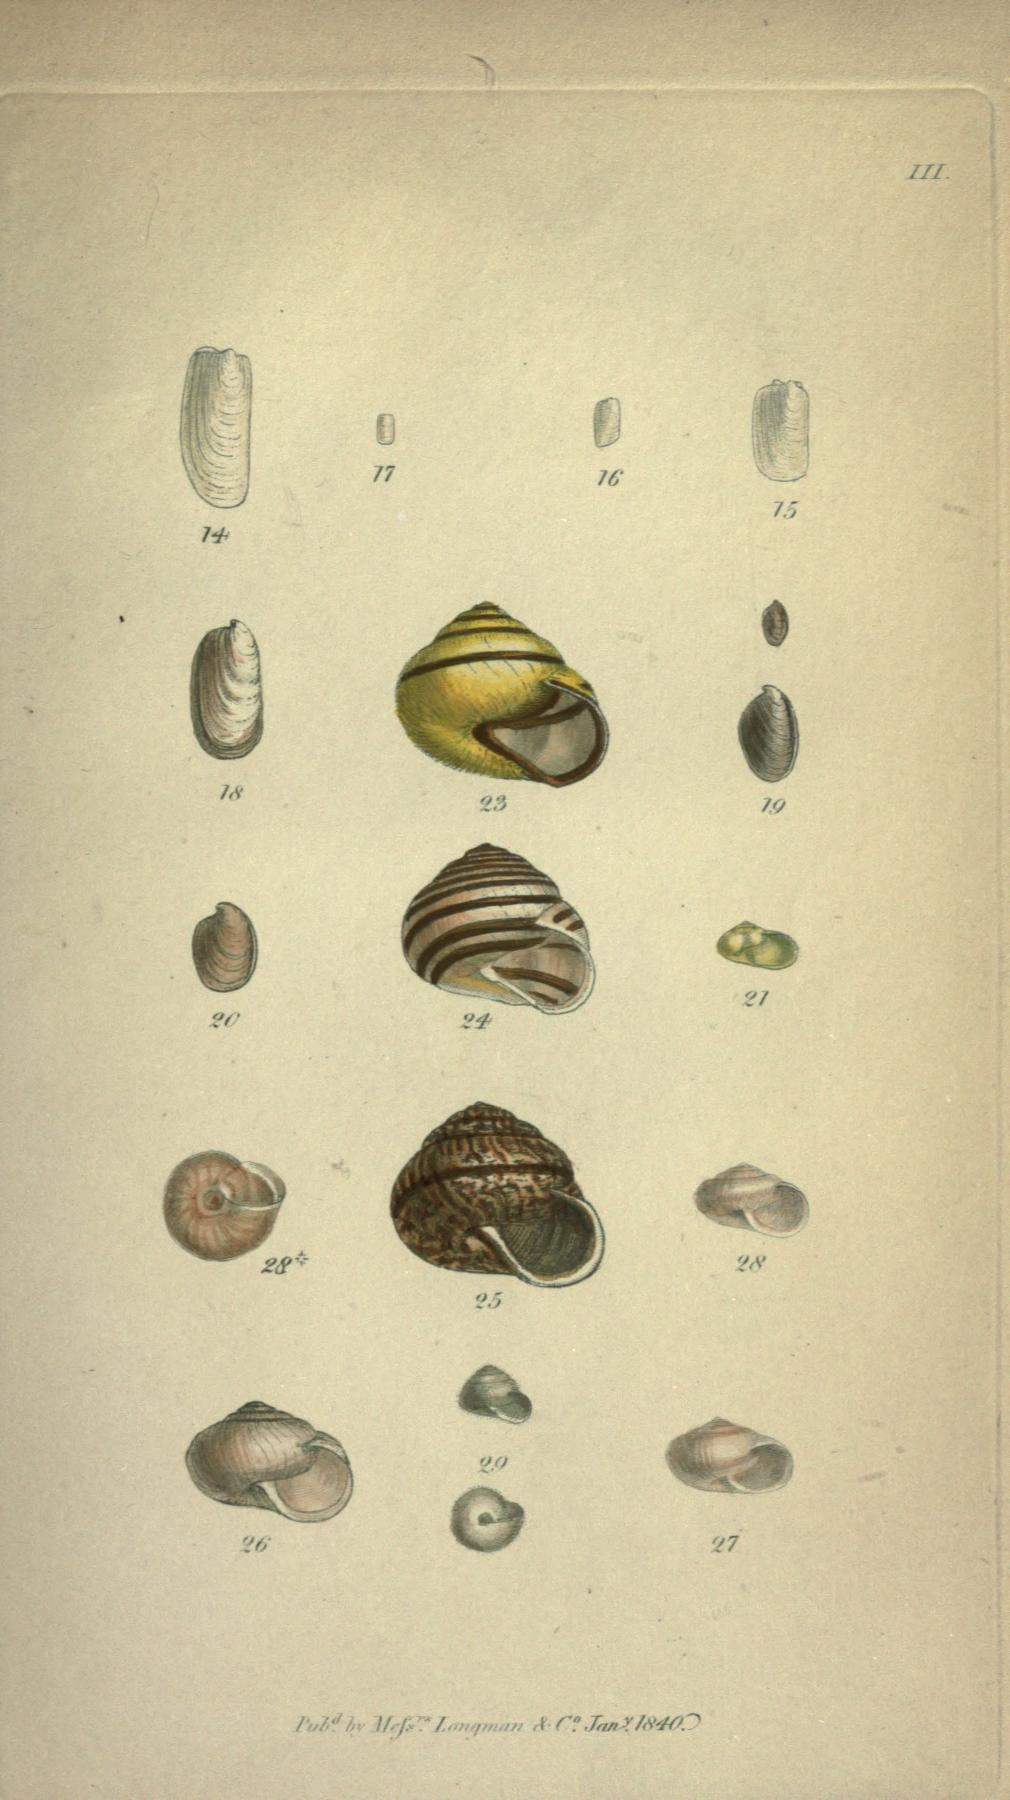 Plate III, figures 14 through 27. Page 331.